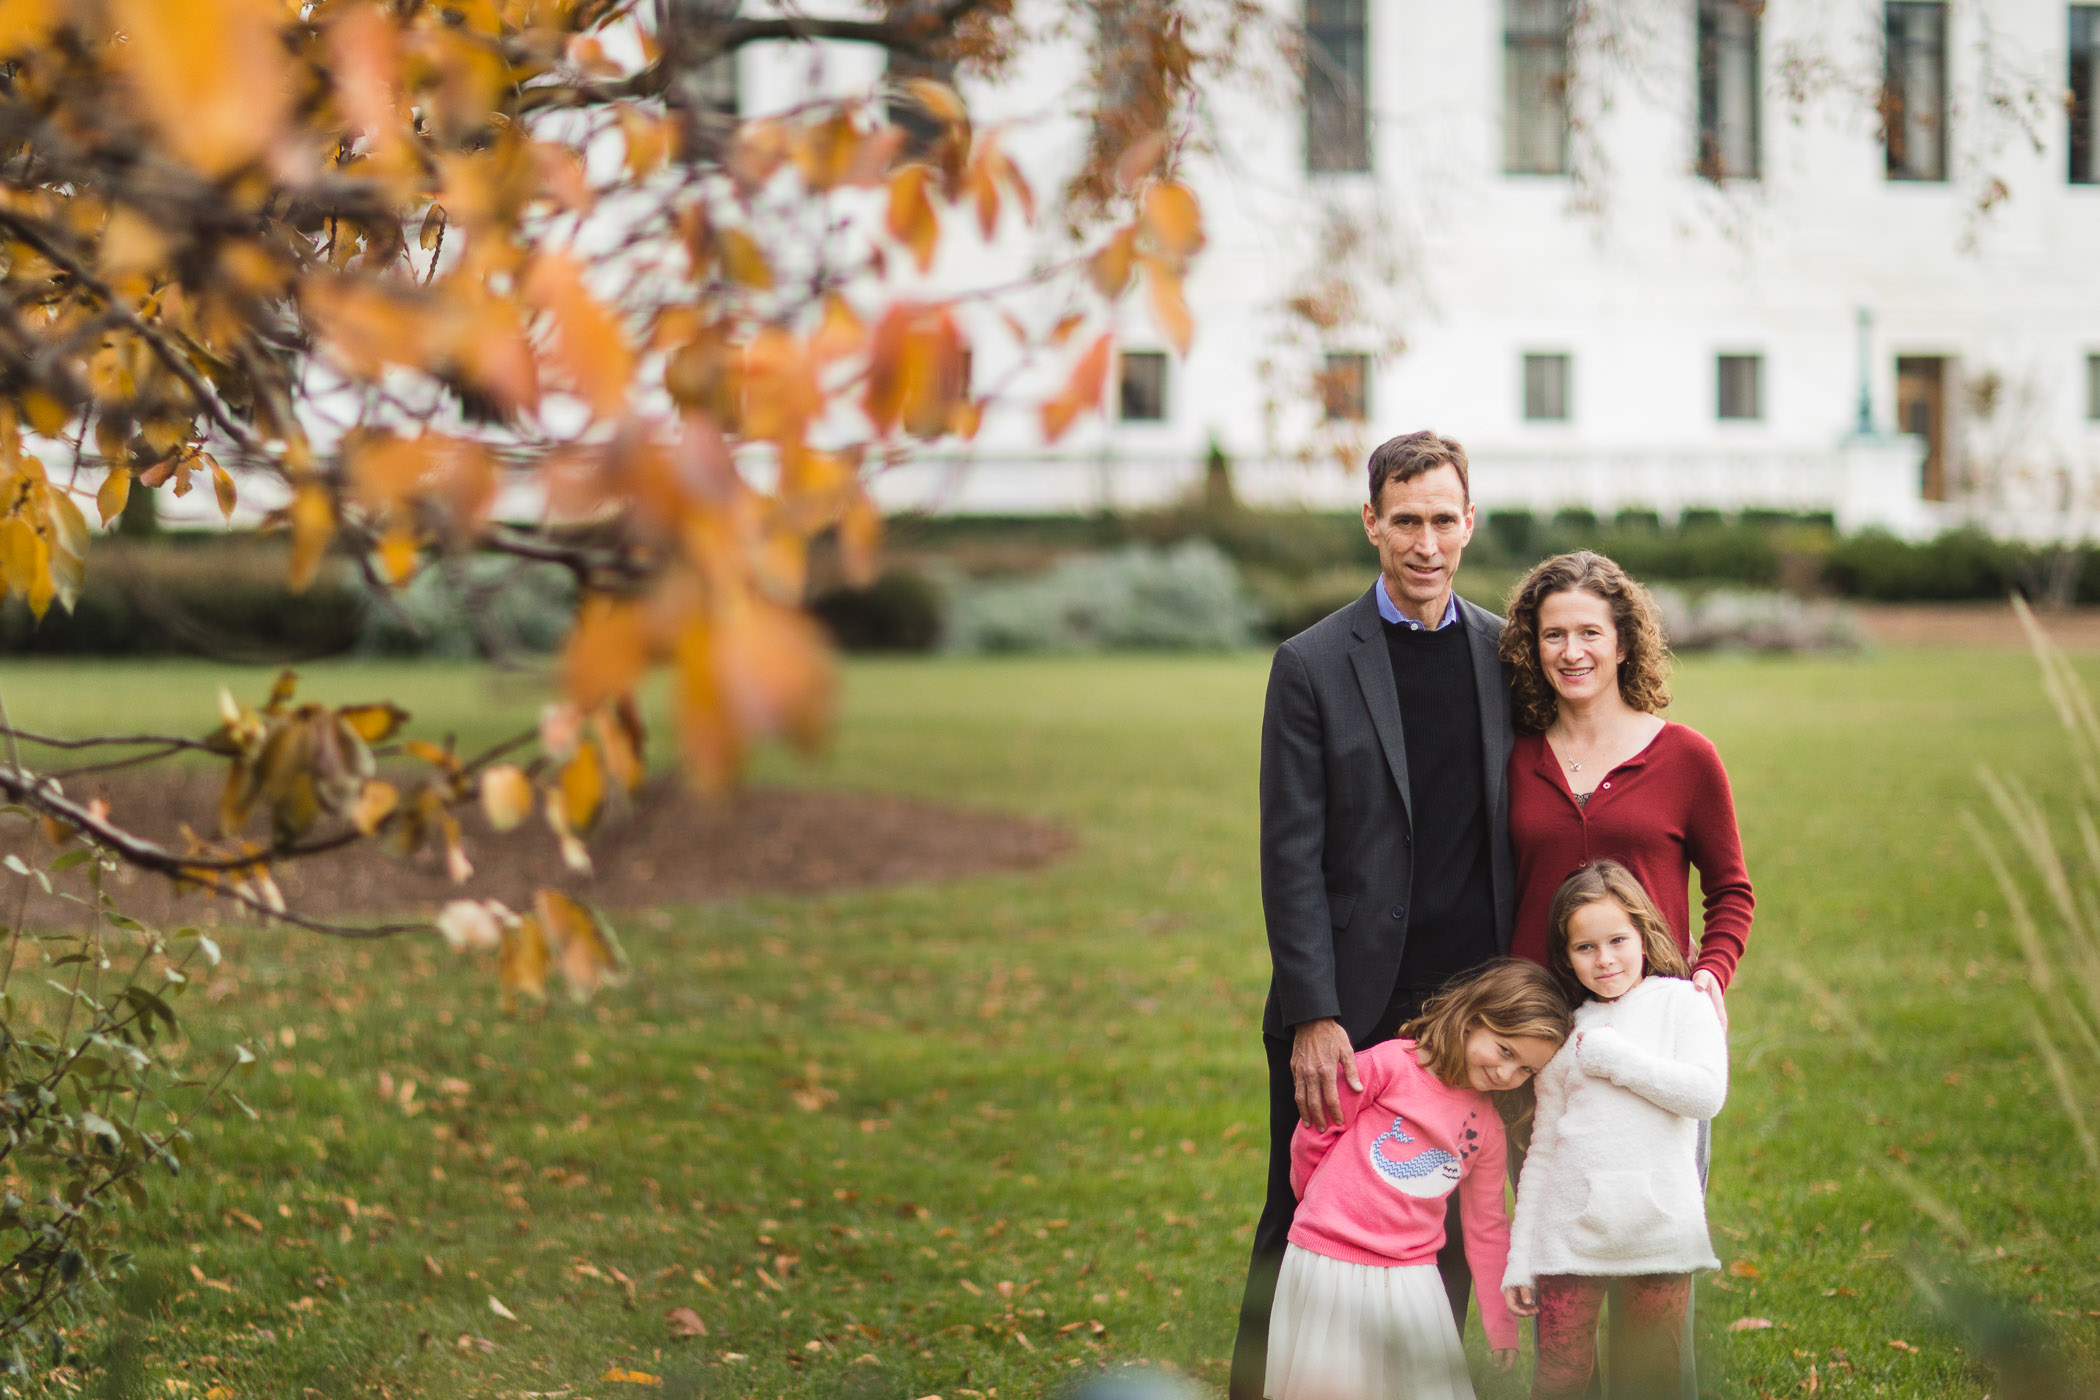 Wandering the Grounds Around the Supreme Court for This Family Portrait Session 15